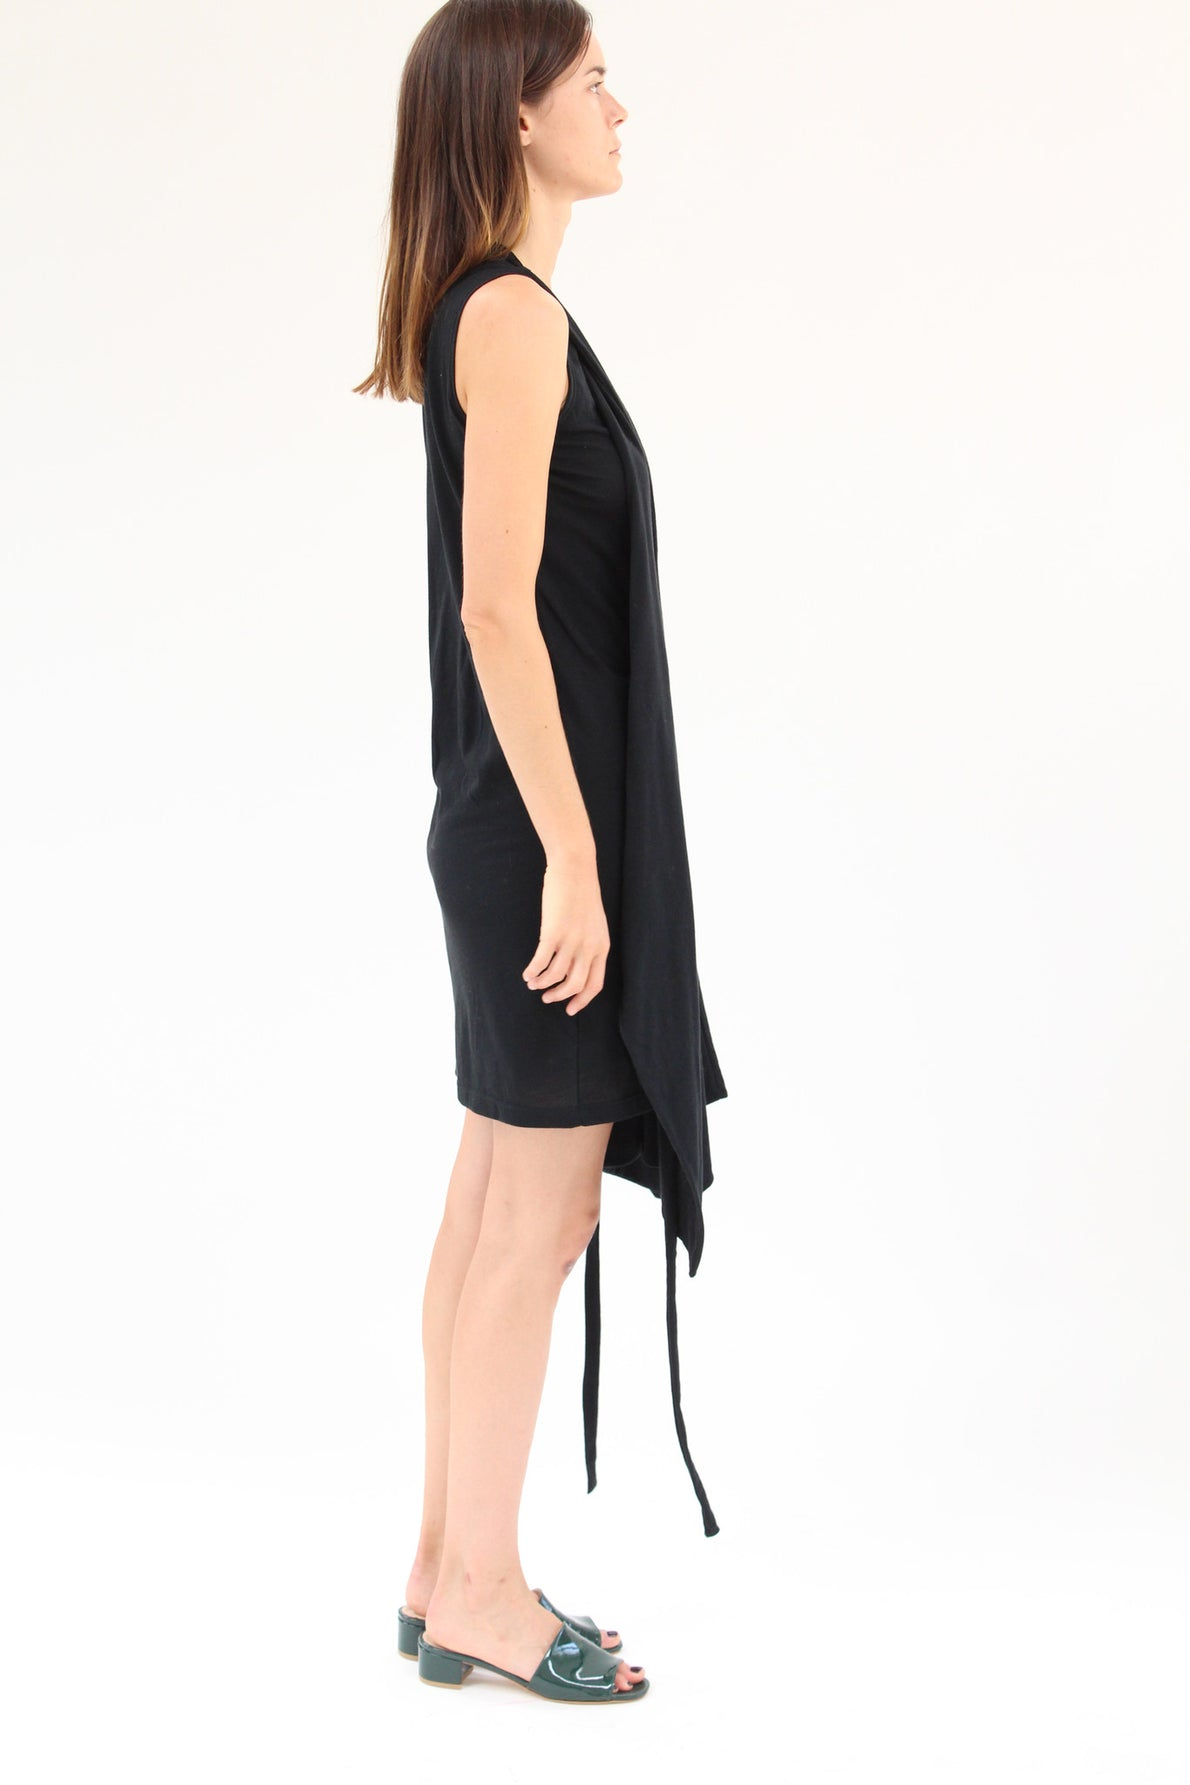 Lina Rennell Criss Cross Jersey Wrap Dress Black / BEKLINA